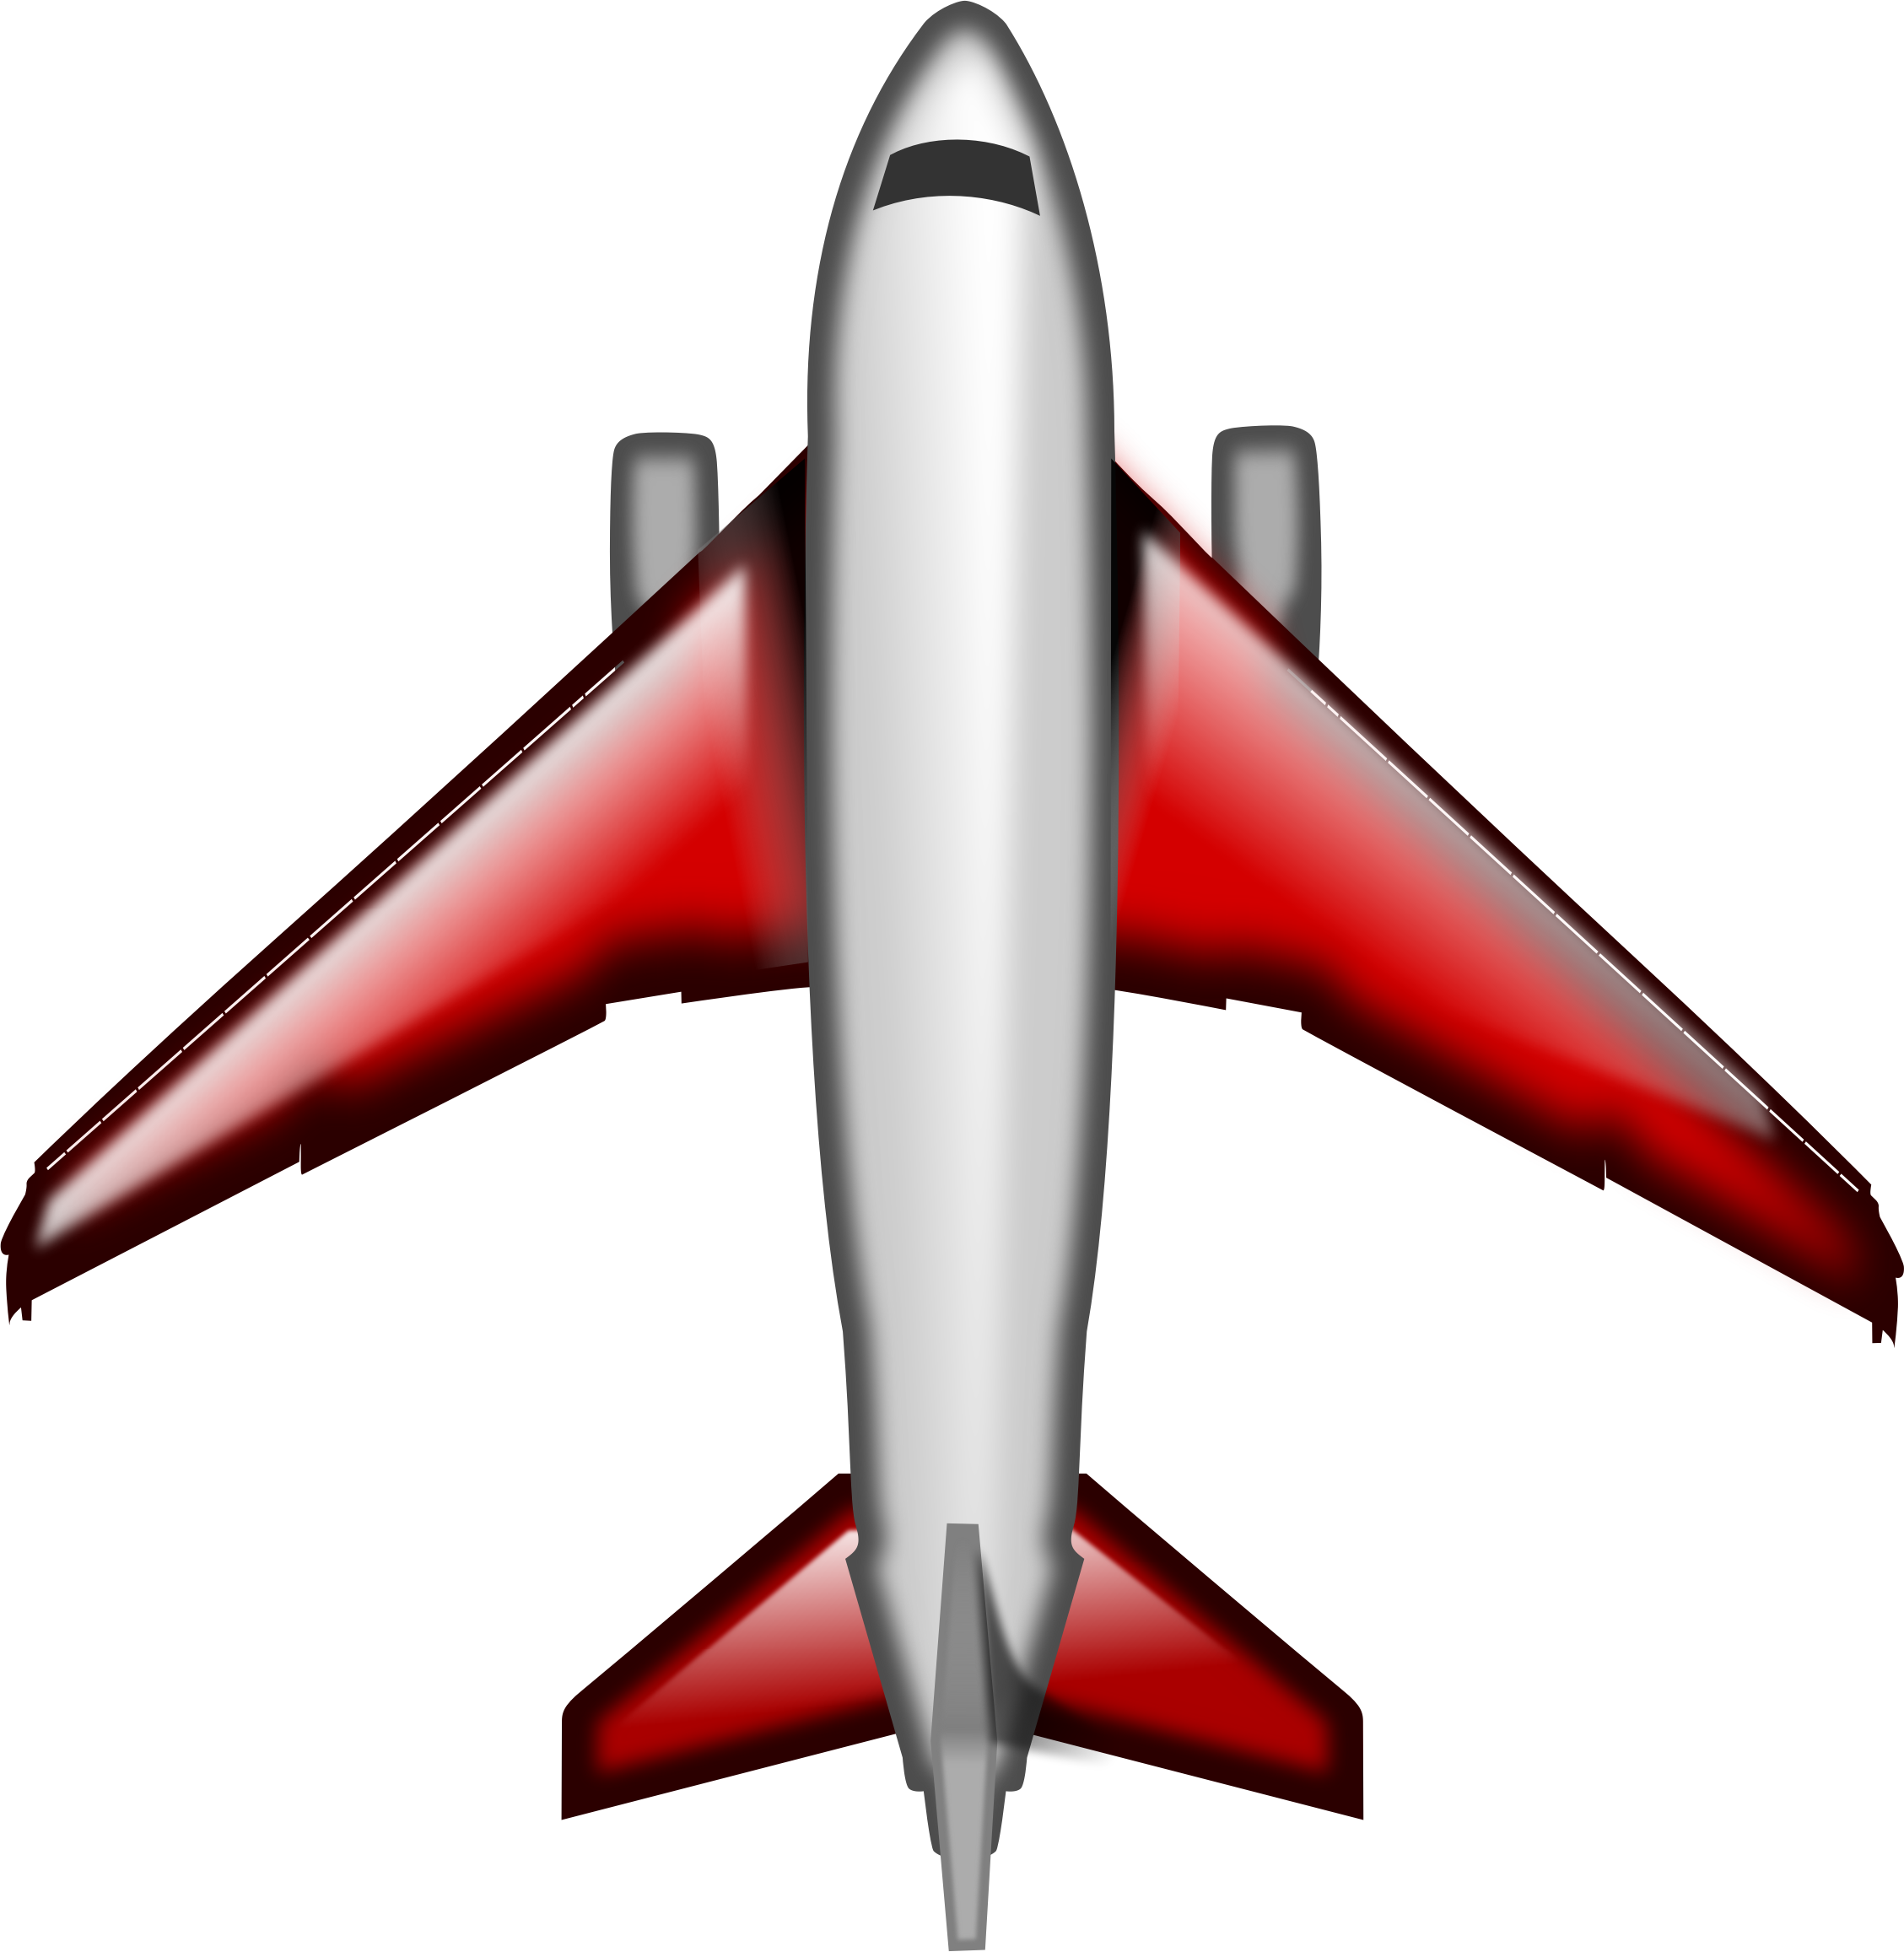 Plane red big image. Wing clipart airline wing